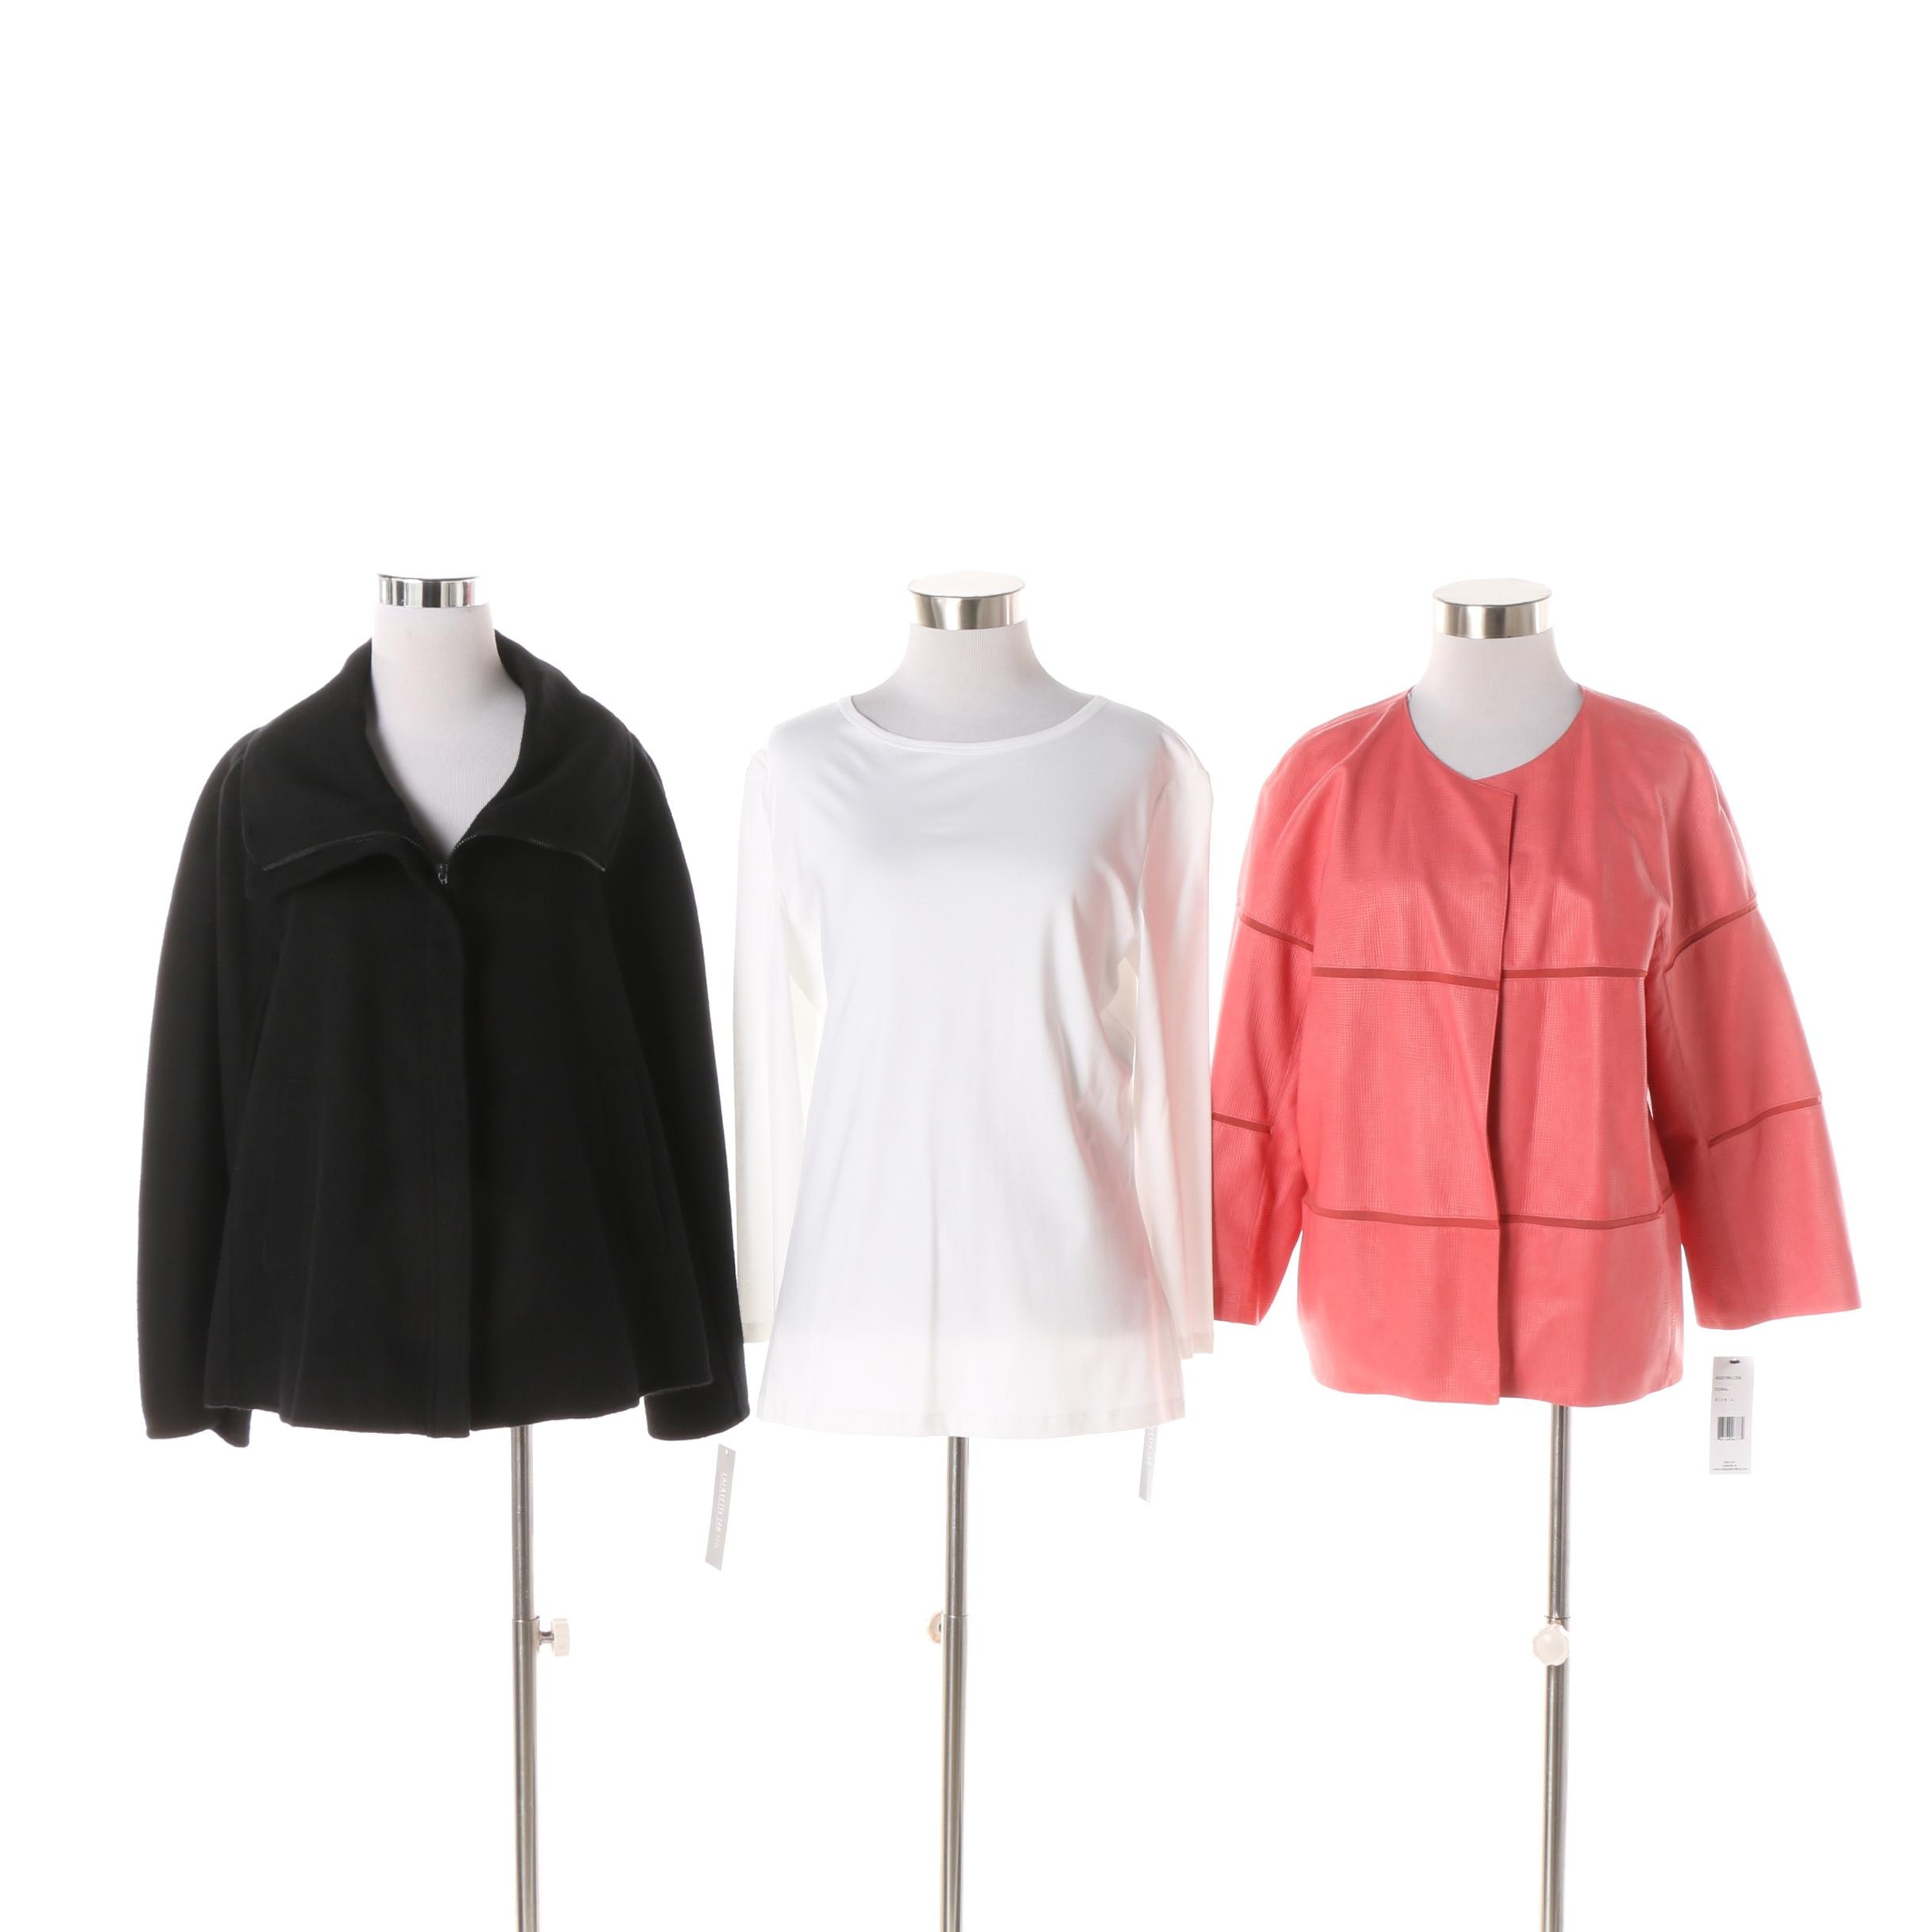 Lafayette 148 New York Coral Leather and Black Wool Blend Jackets and White Top